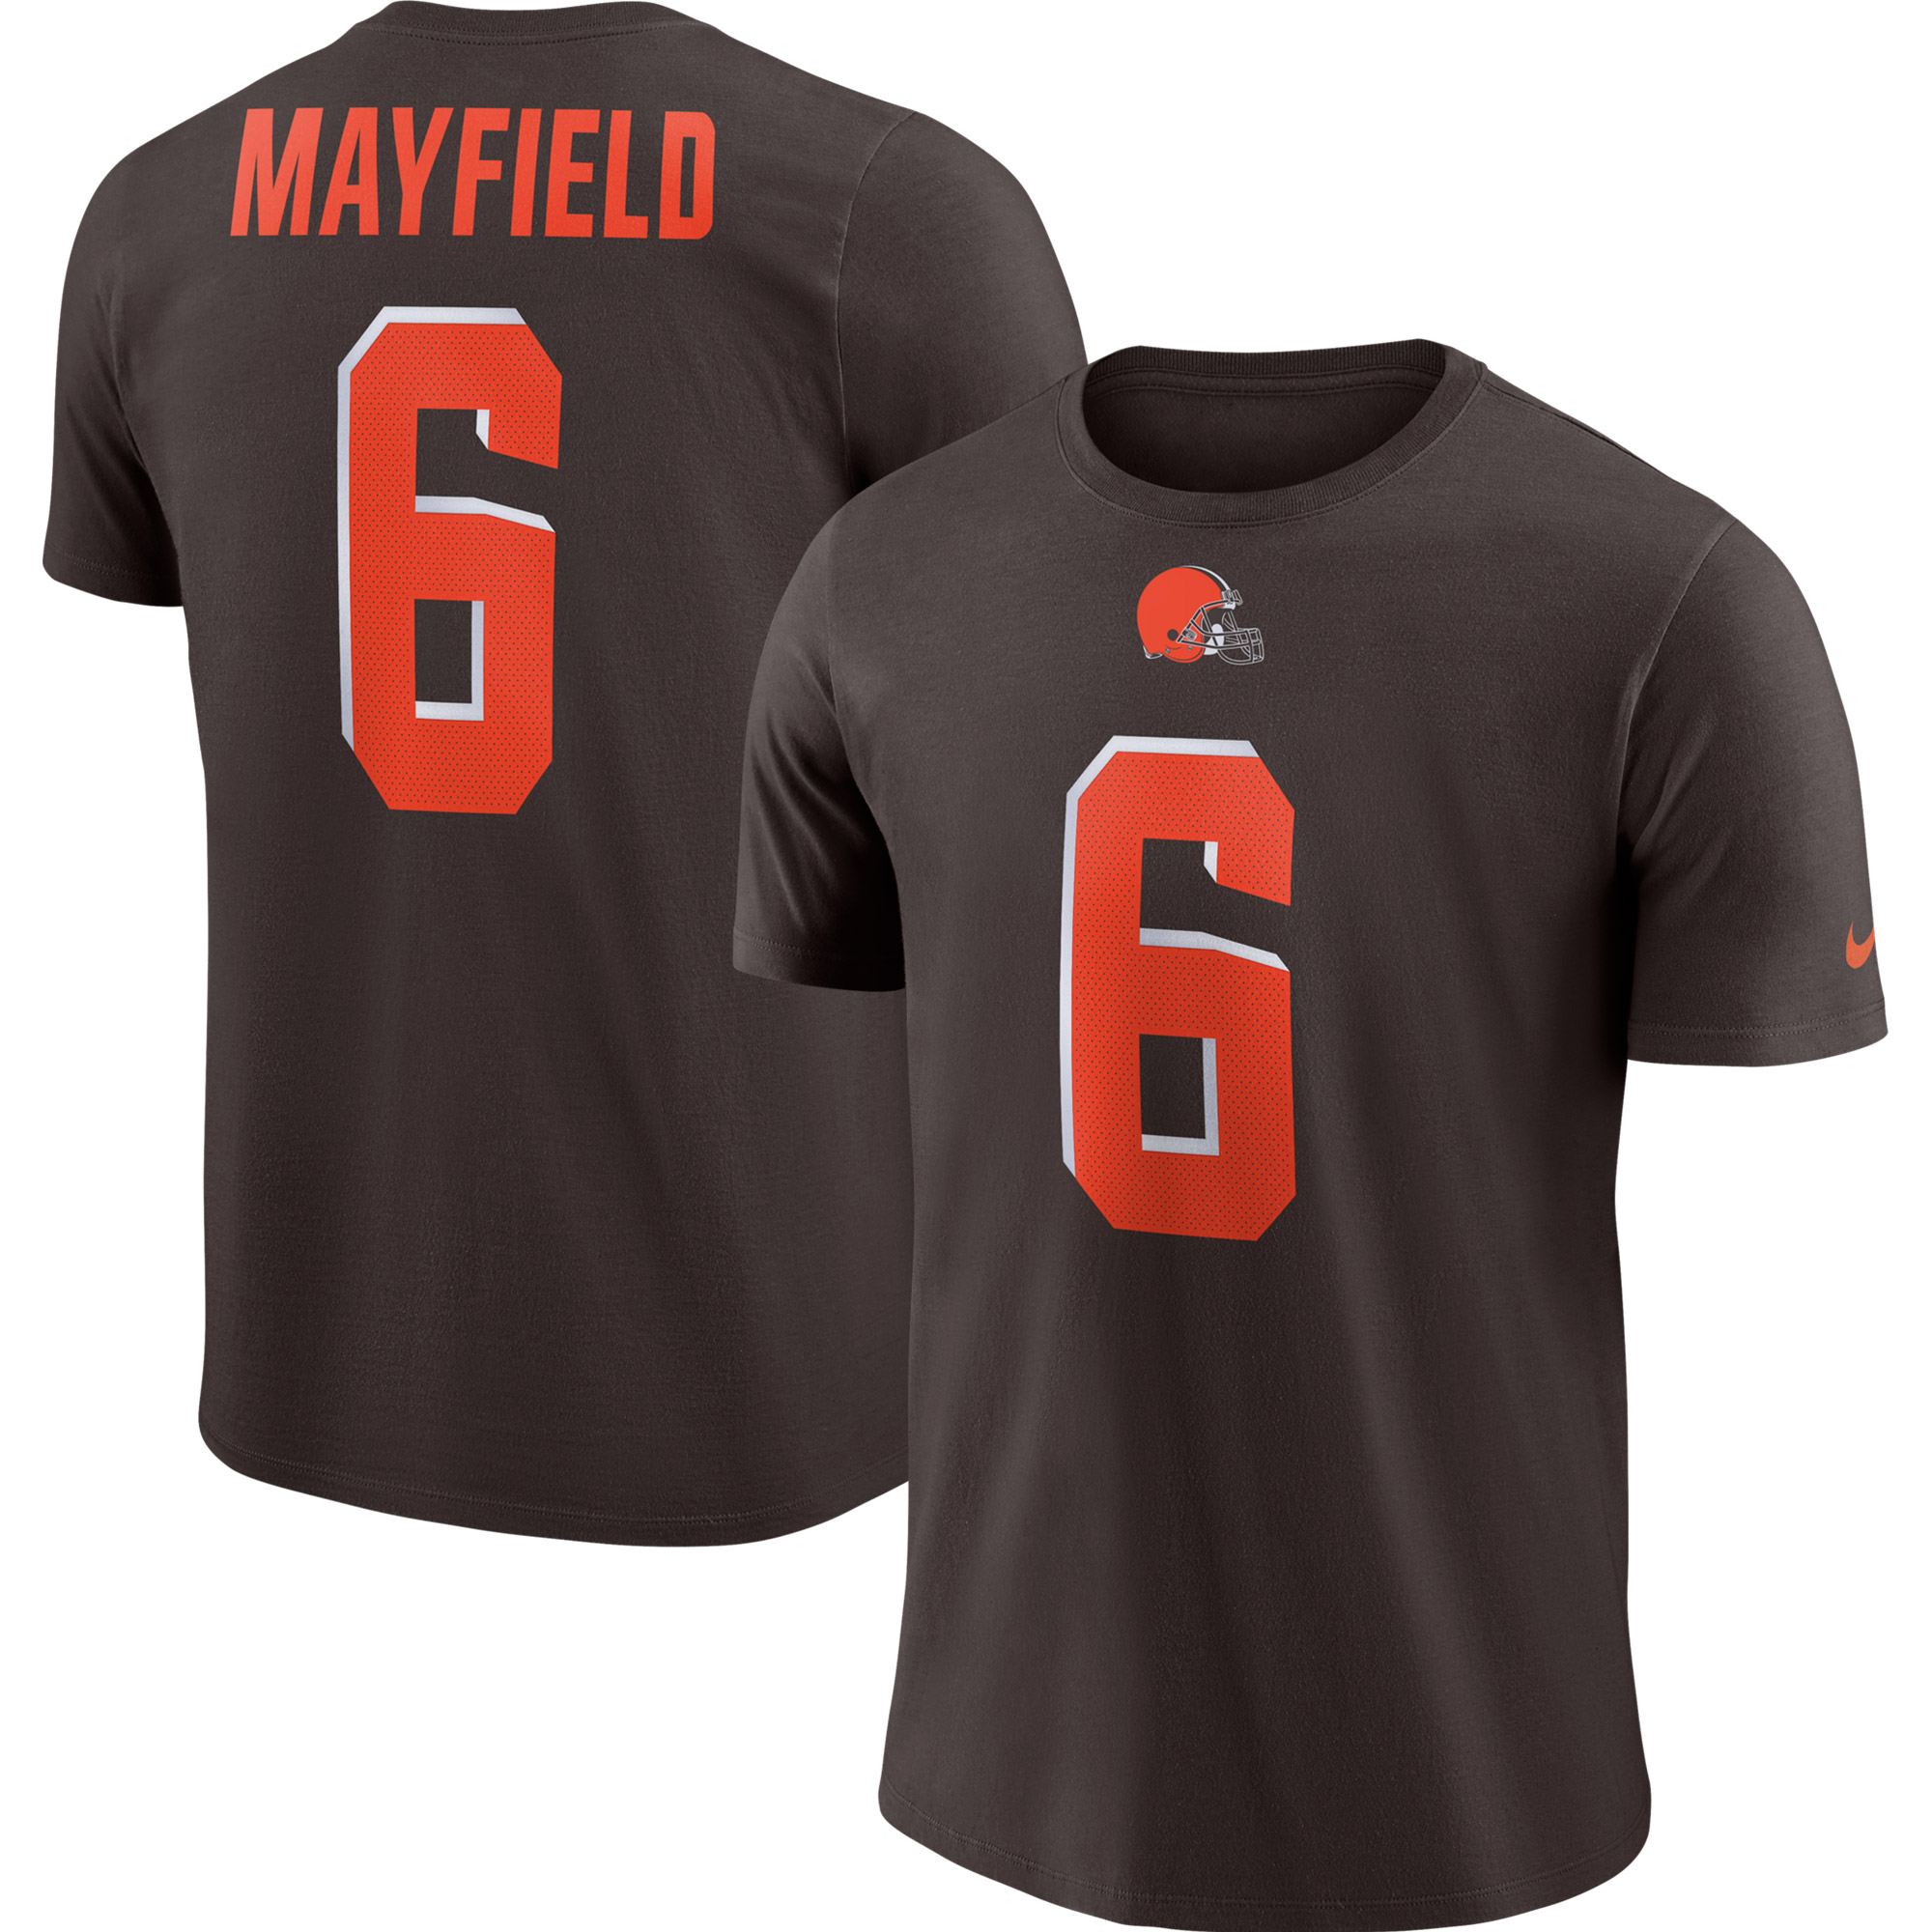 Baker Mayfield Cleveland Browns Nike Player Pride Name & Number Performance T-Shirt - Brown